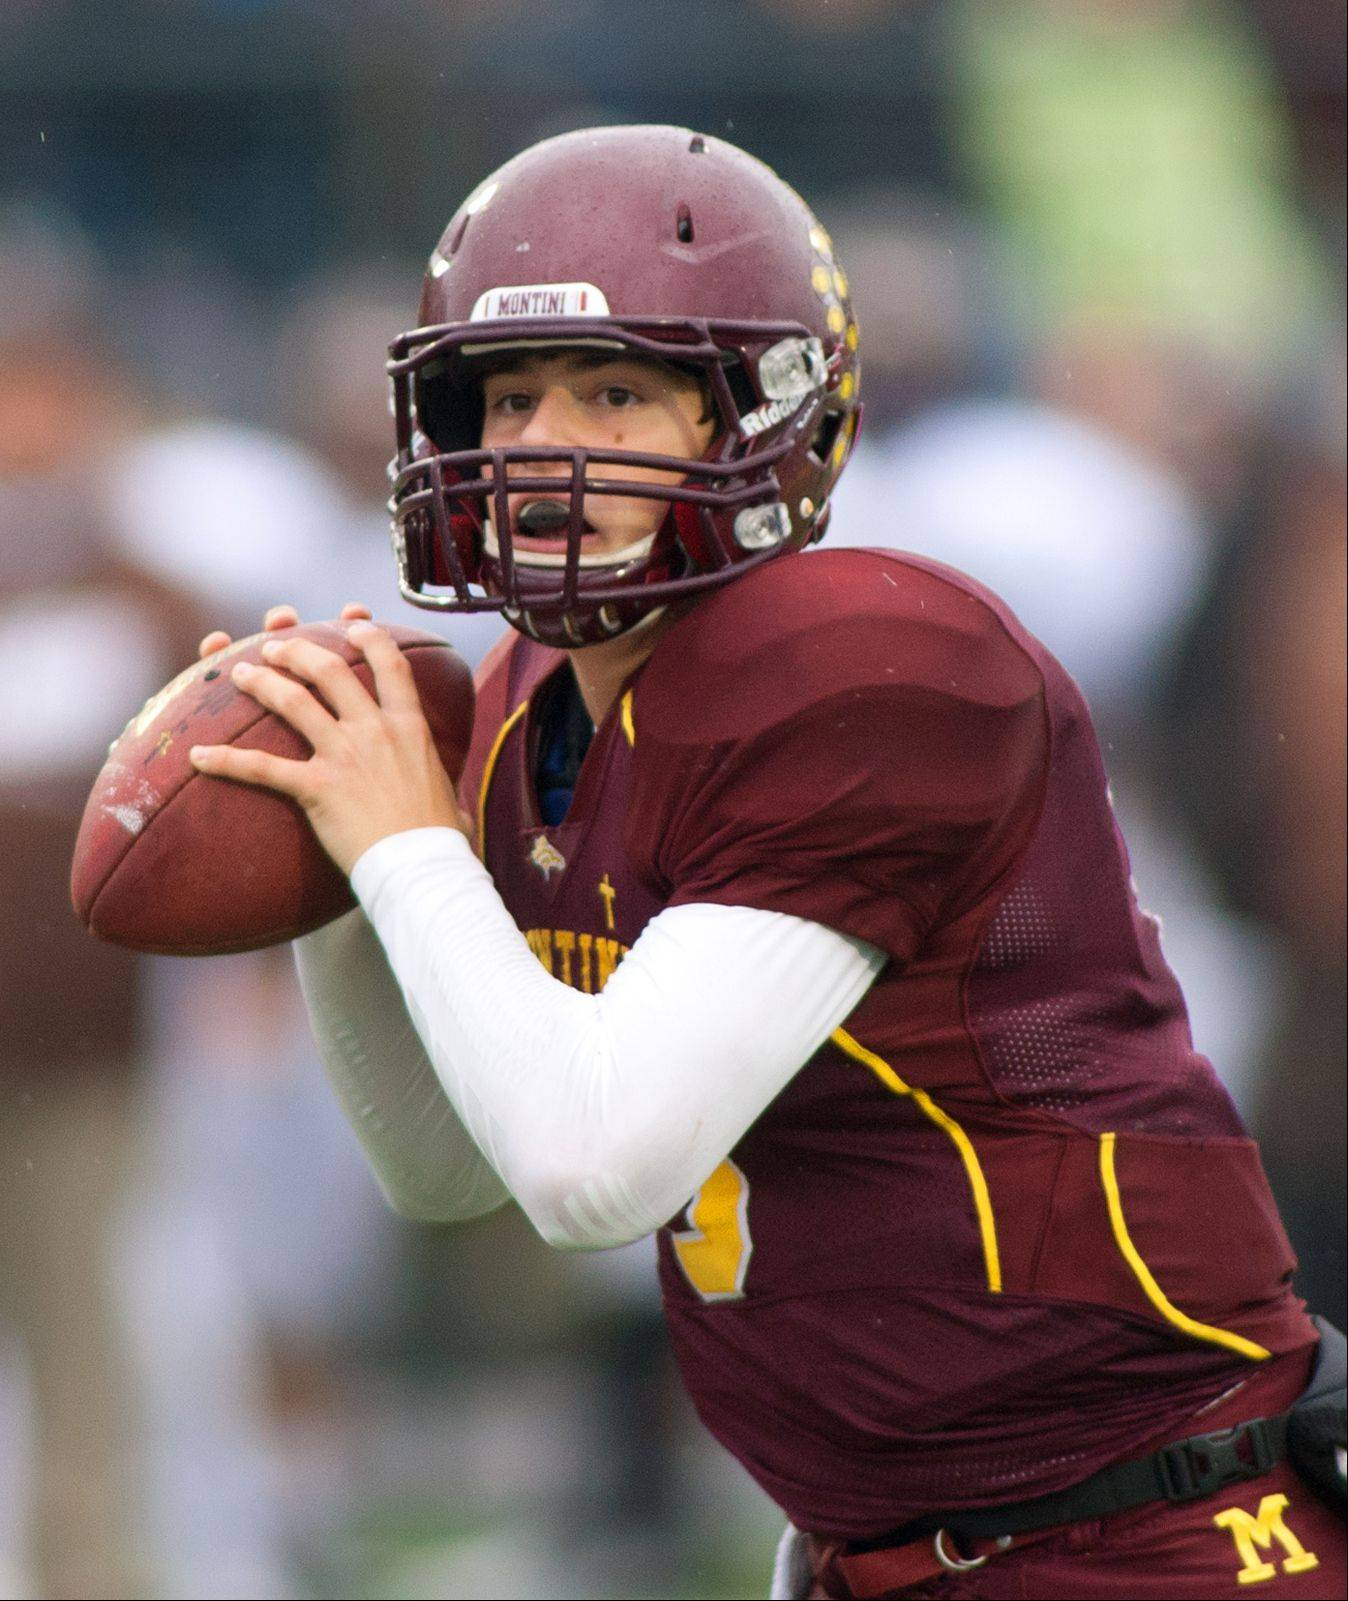 Montini Catholic quarterback Alexander Wills looks to the endzone against Joliet Catholic.